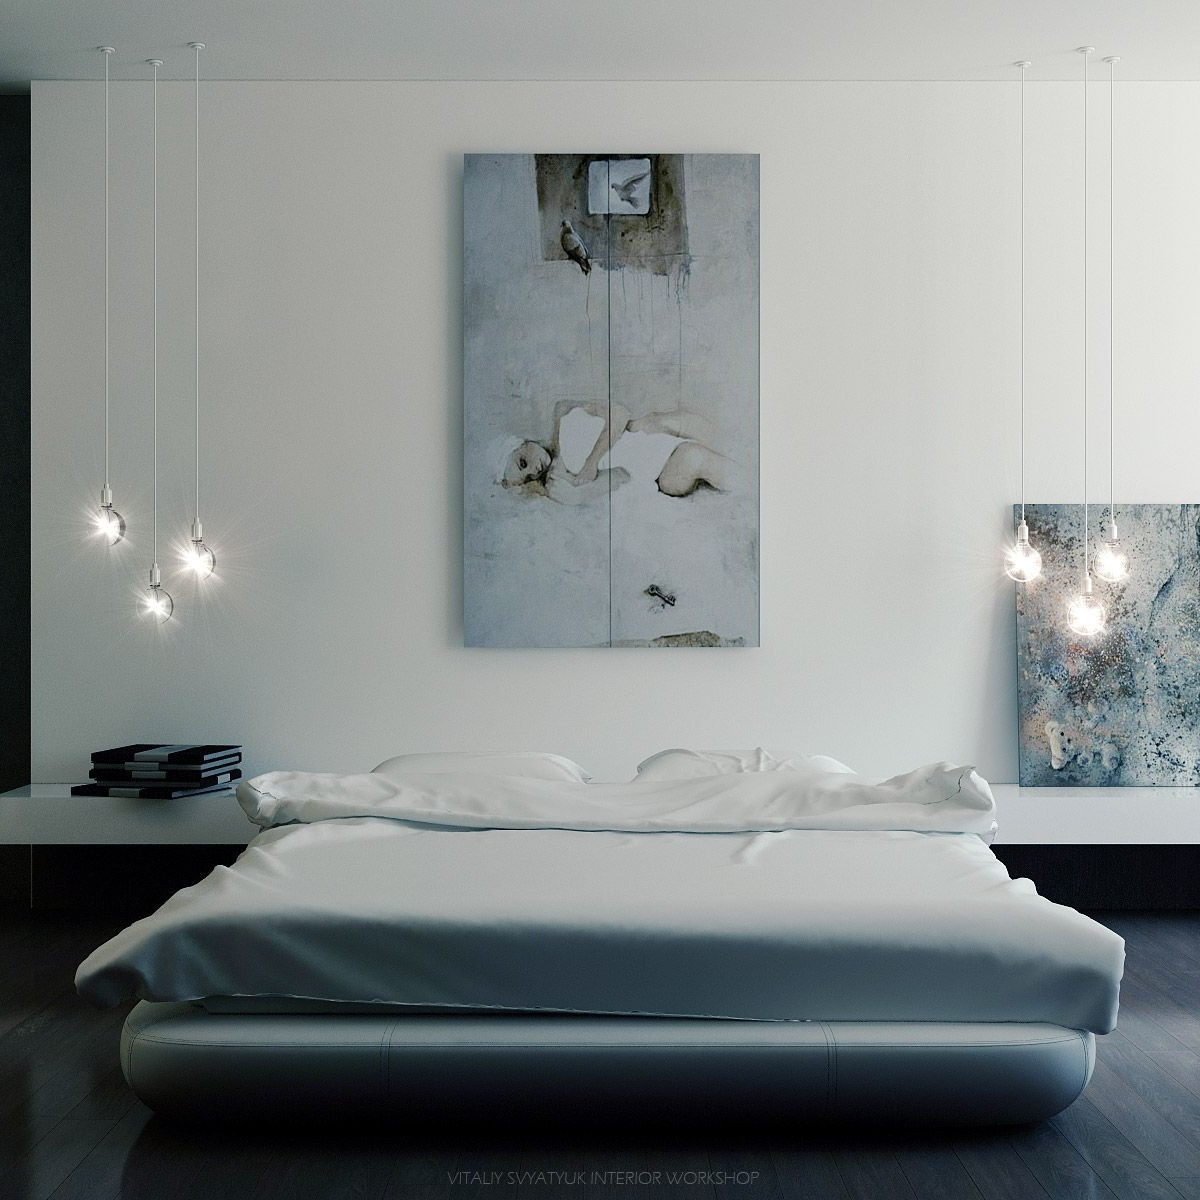 Modern Art Deco Master Bedroom Colin Timberlake Designs within Modern Art For Bedroom